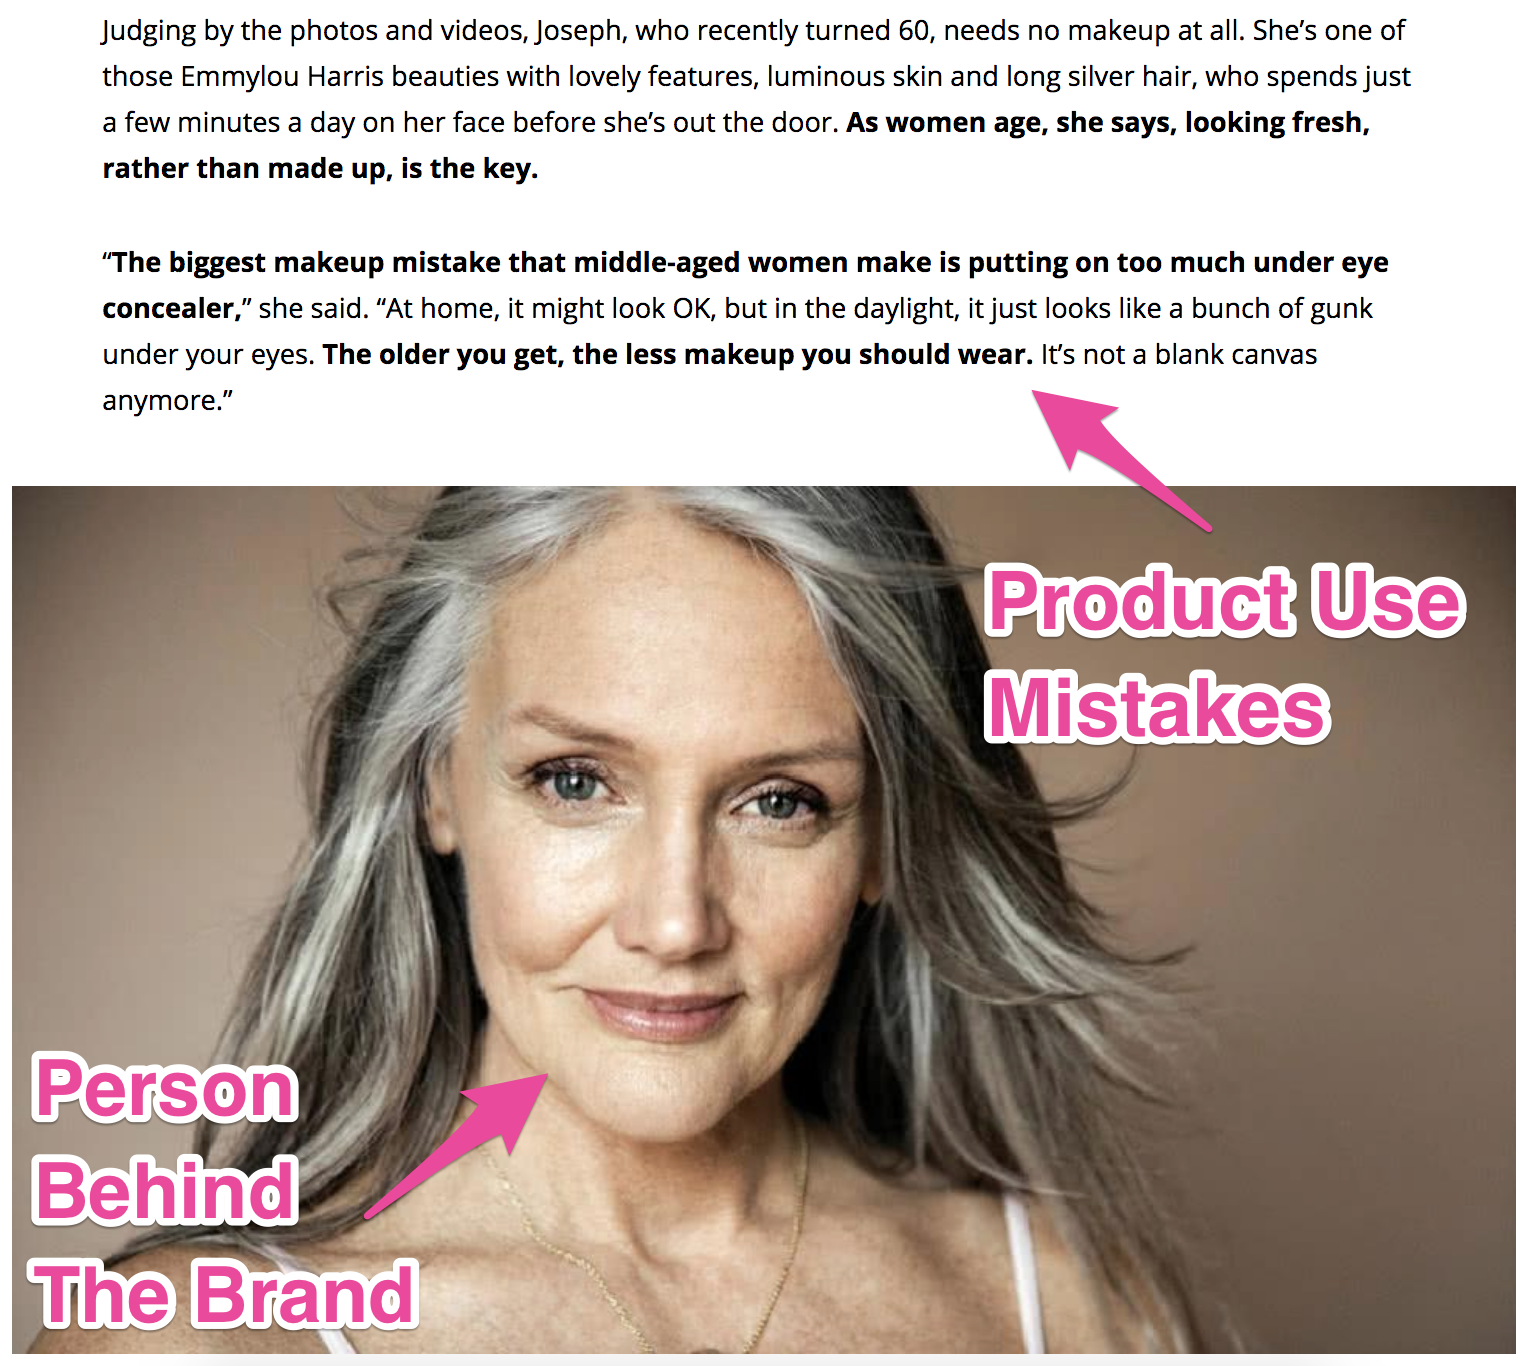 Screenshot showing copy that details mistakes in using a product, and a picture of the person behind the brand